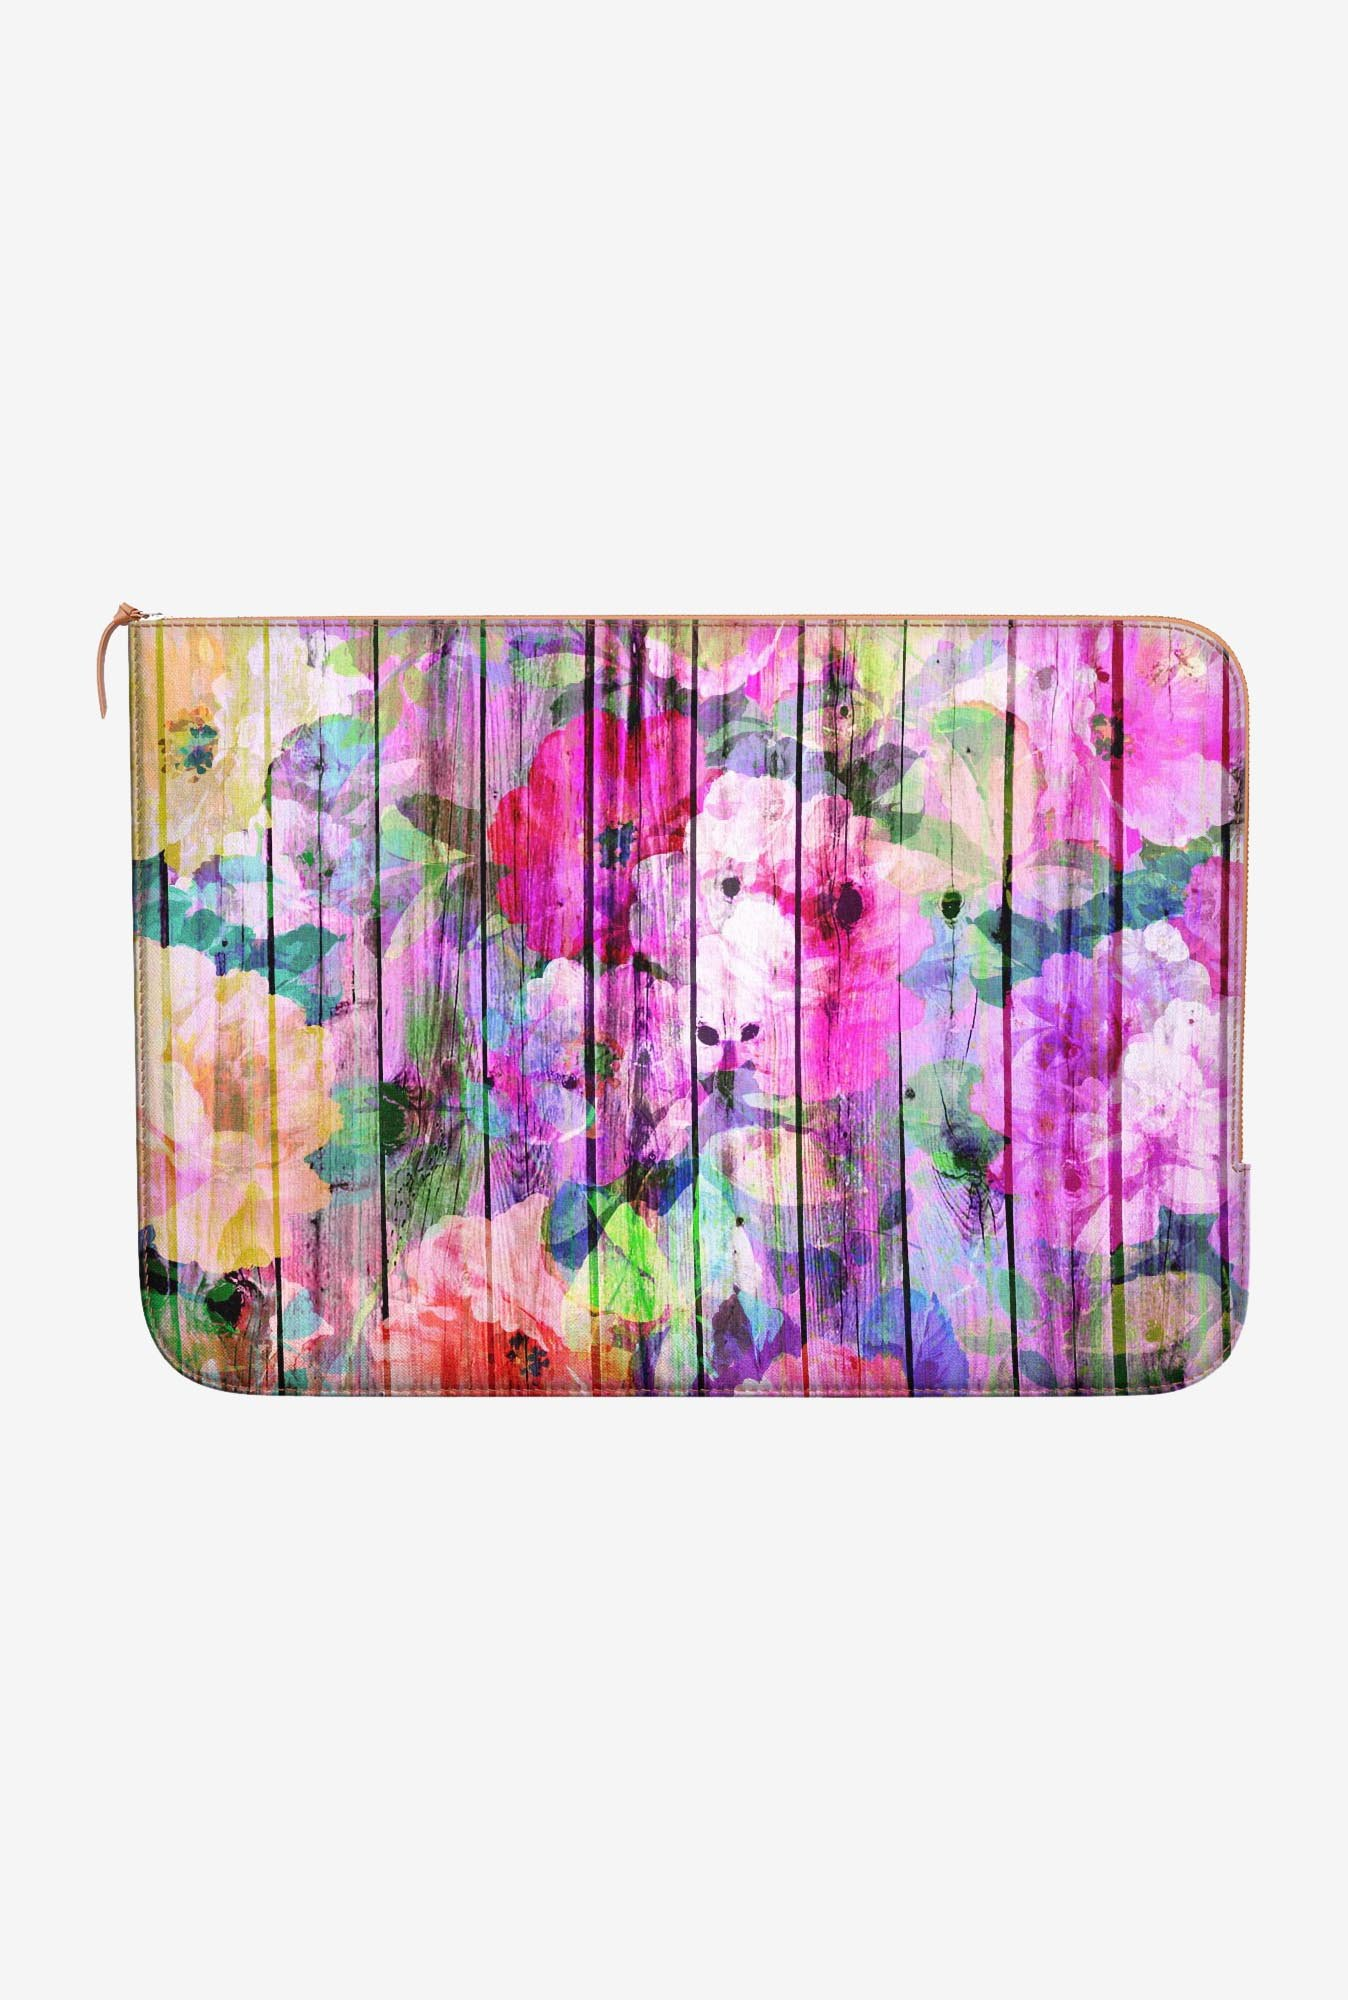 DailyObjects Floral Purple MacBook Air 11 Zippered Sleeve